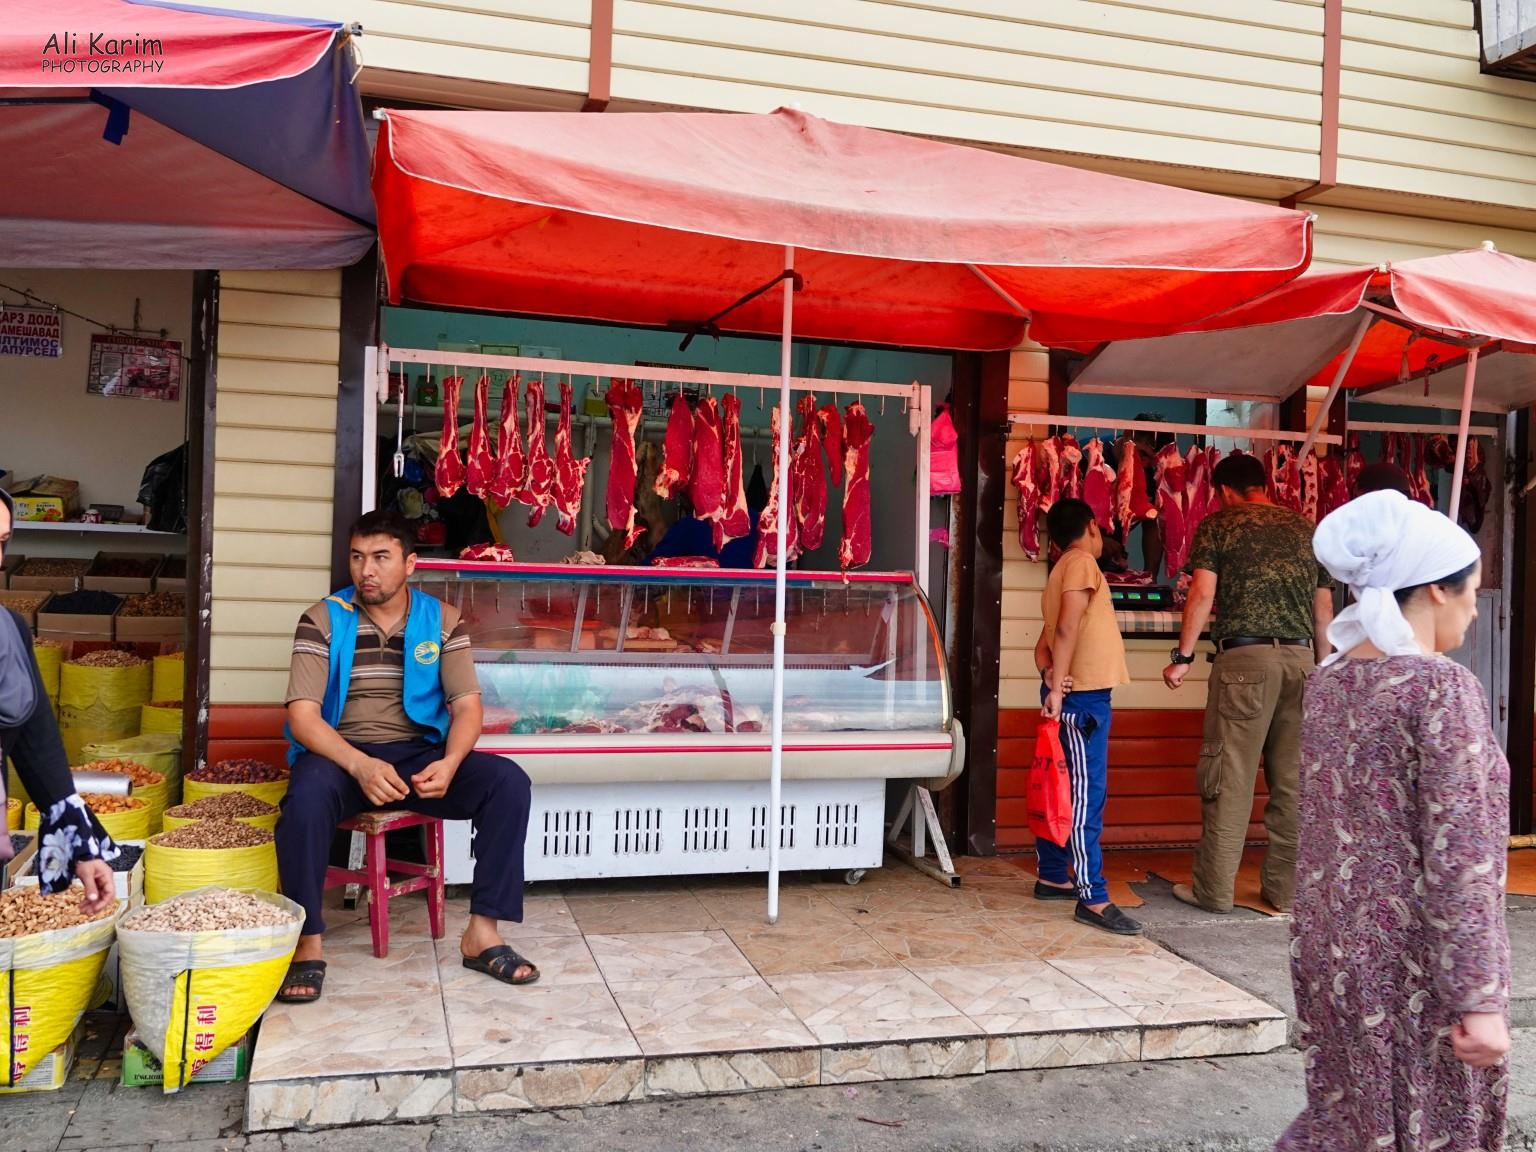 More Dushanbe, Tajikistan Meats and grains/nuts were also on sale in this clothing market